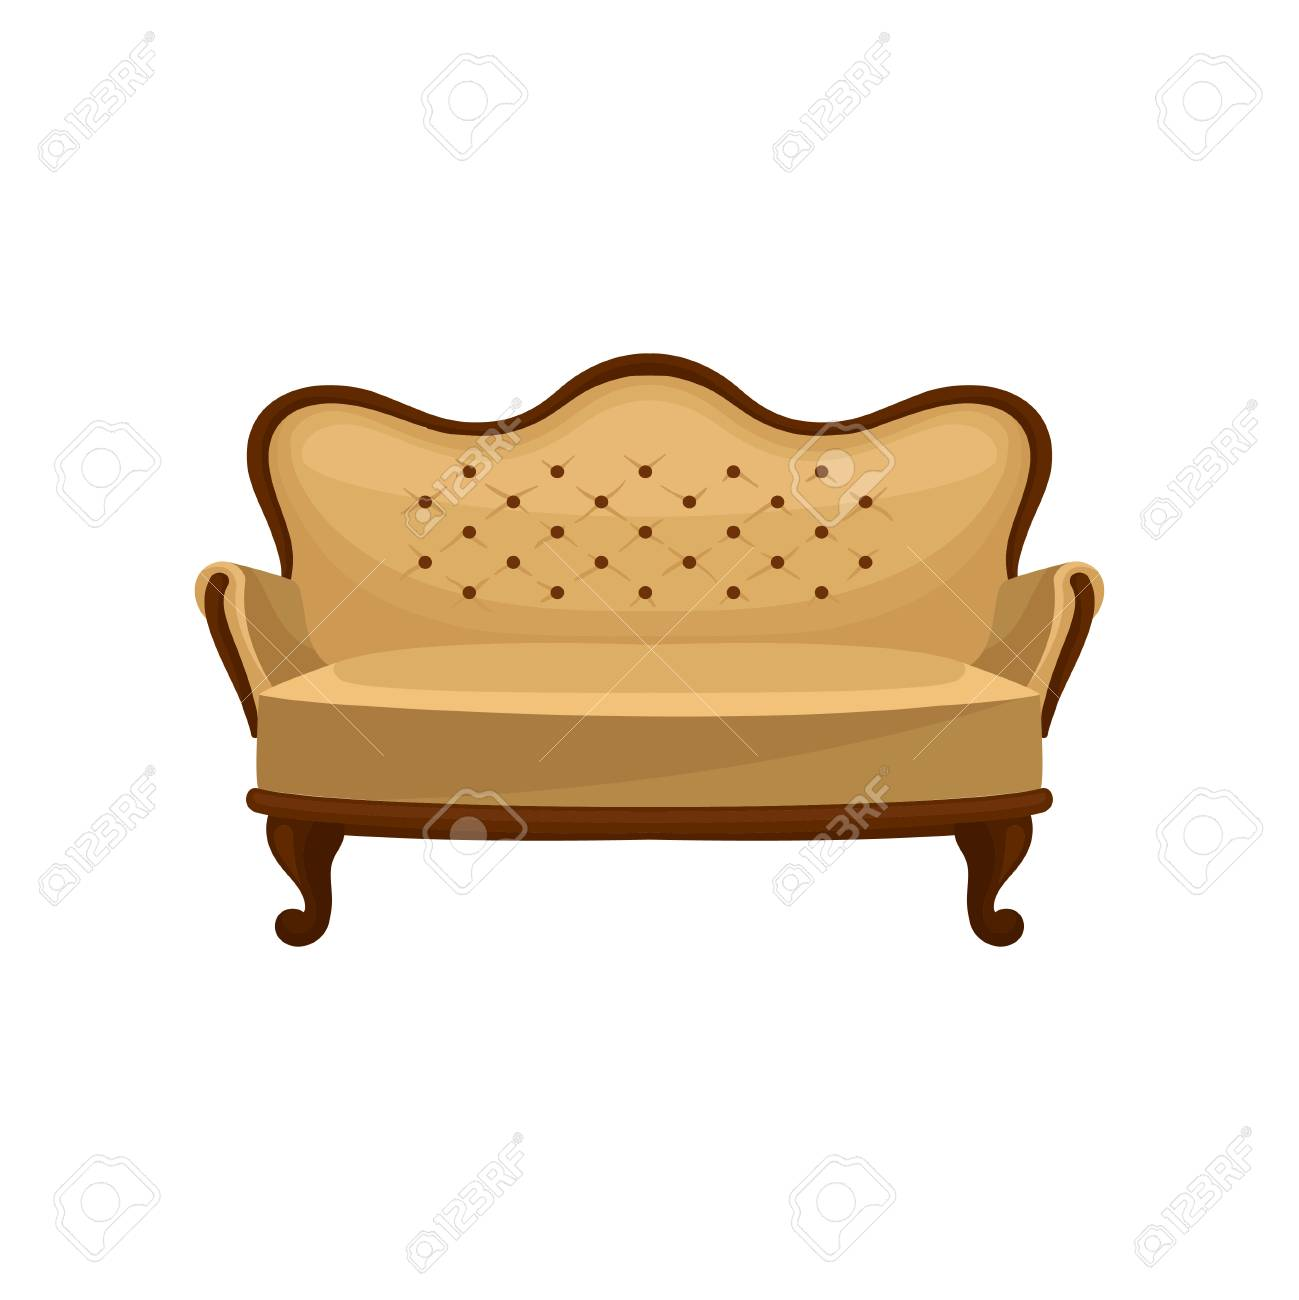 Vintage Couch Cartoon Icon Of Classic Vintage Couch Wooden Sofa With Beige